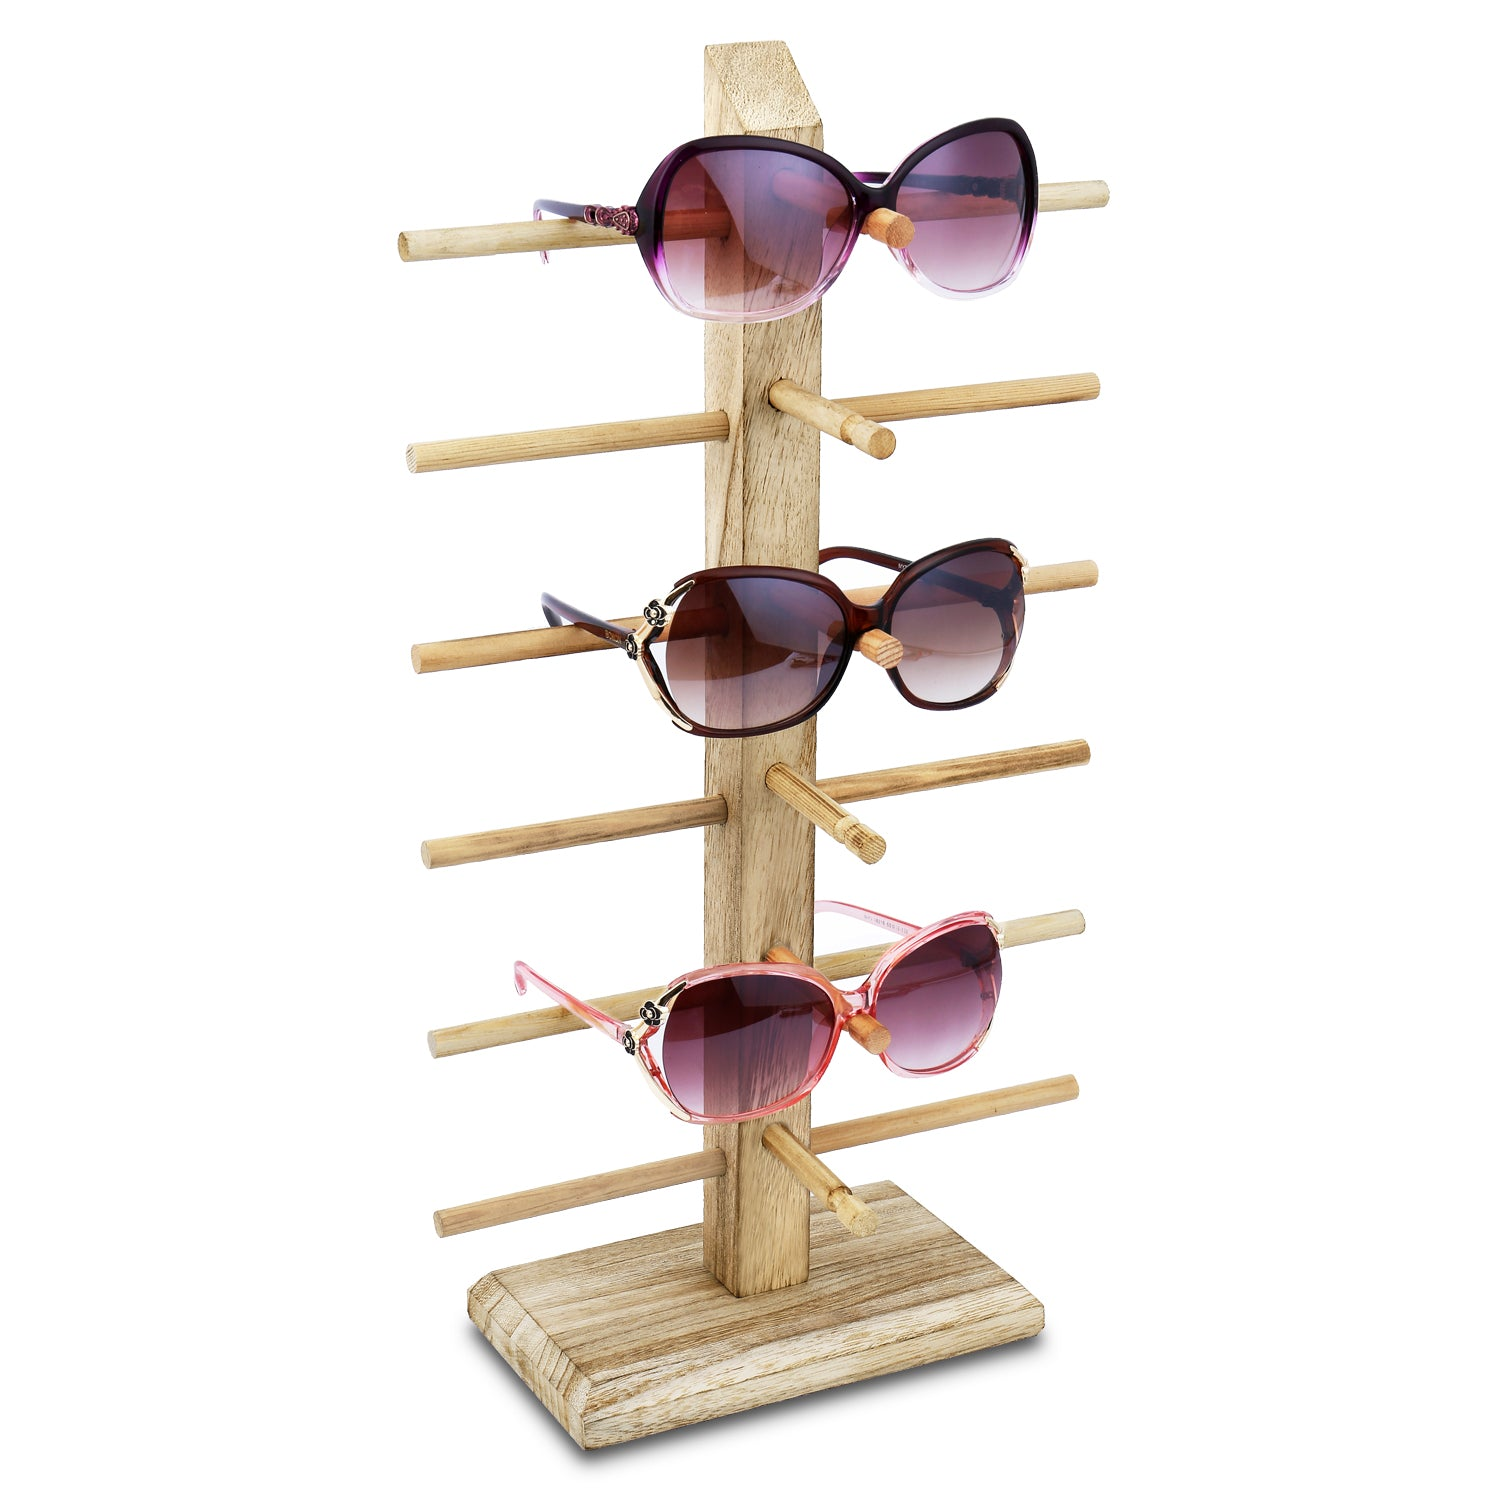 #WD-06OK Wooden Eyeglass Rack for Showcasing 6 Pairs of Glasses